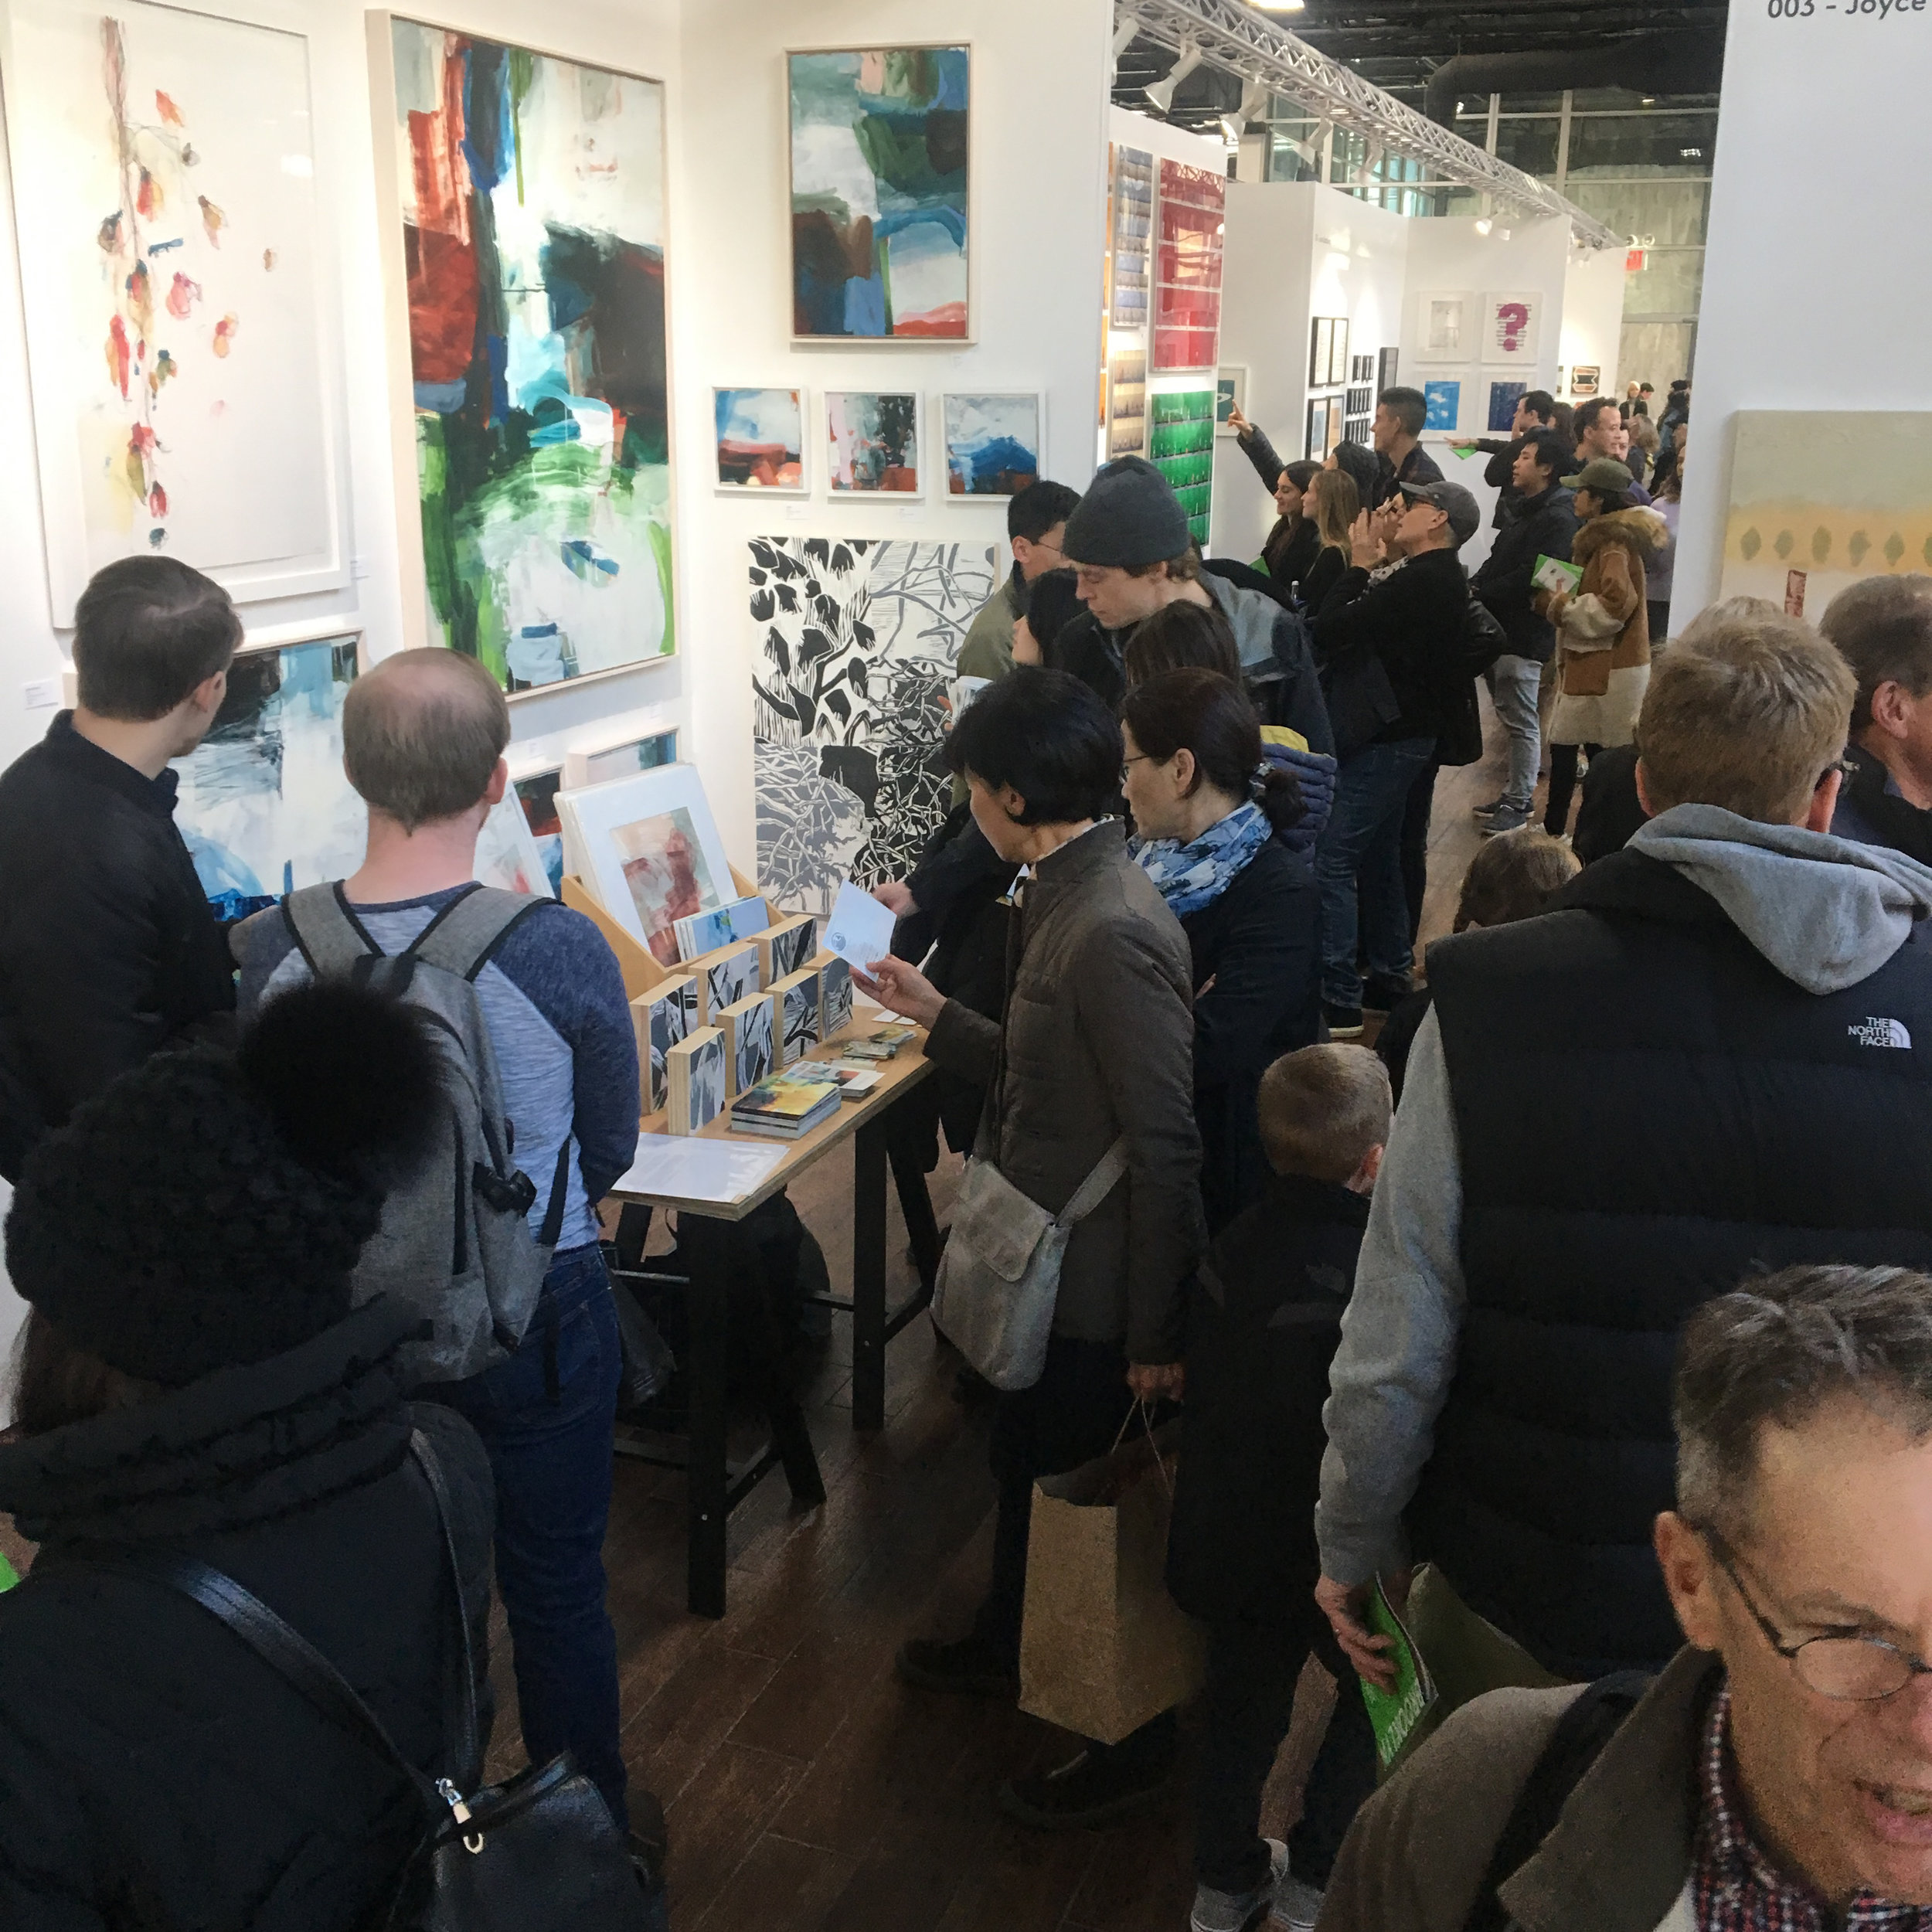 Michael Rich at the Other Art Fair, NY, June 2017